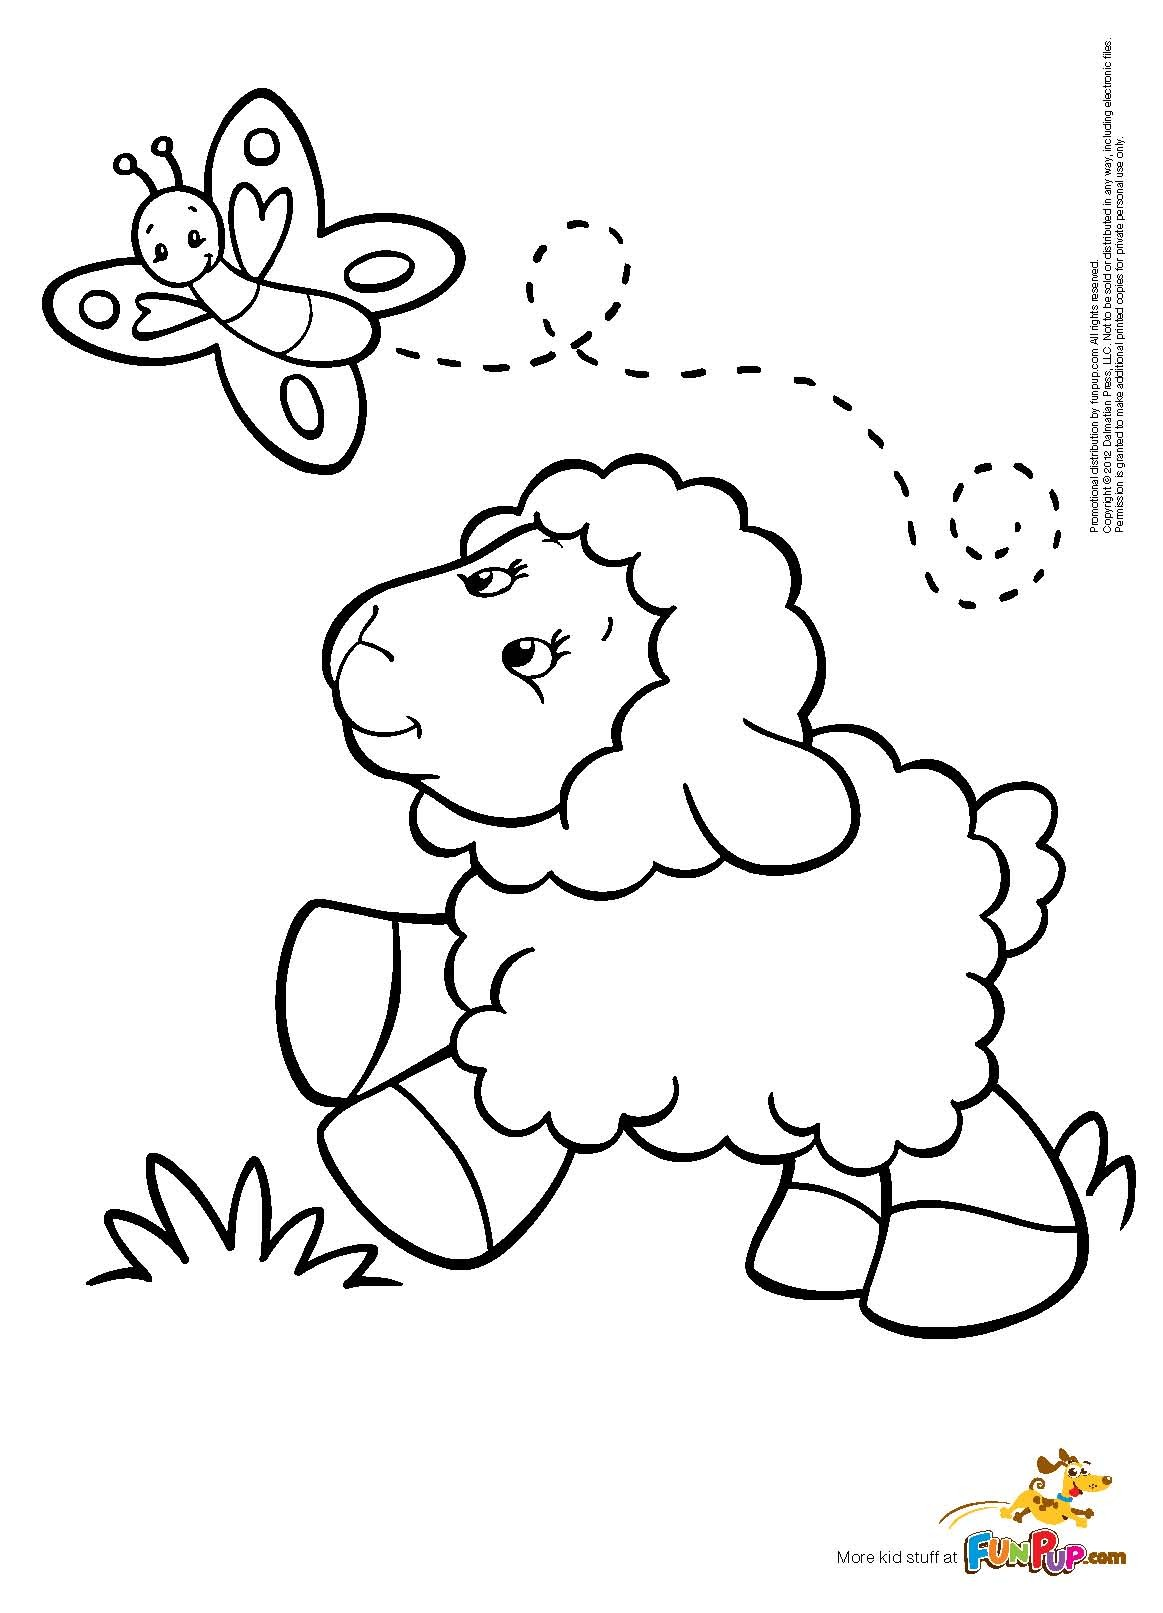 1163x1613 Important Sheep Coloring Pages To Print Butter